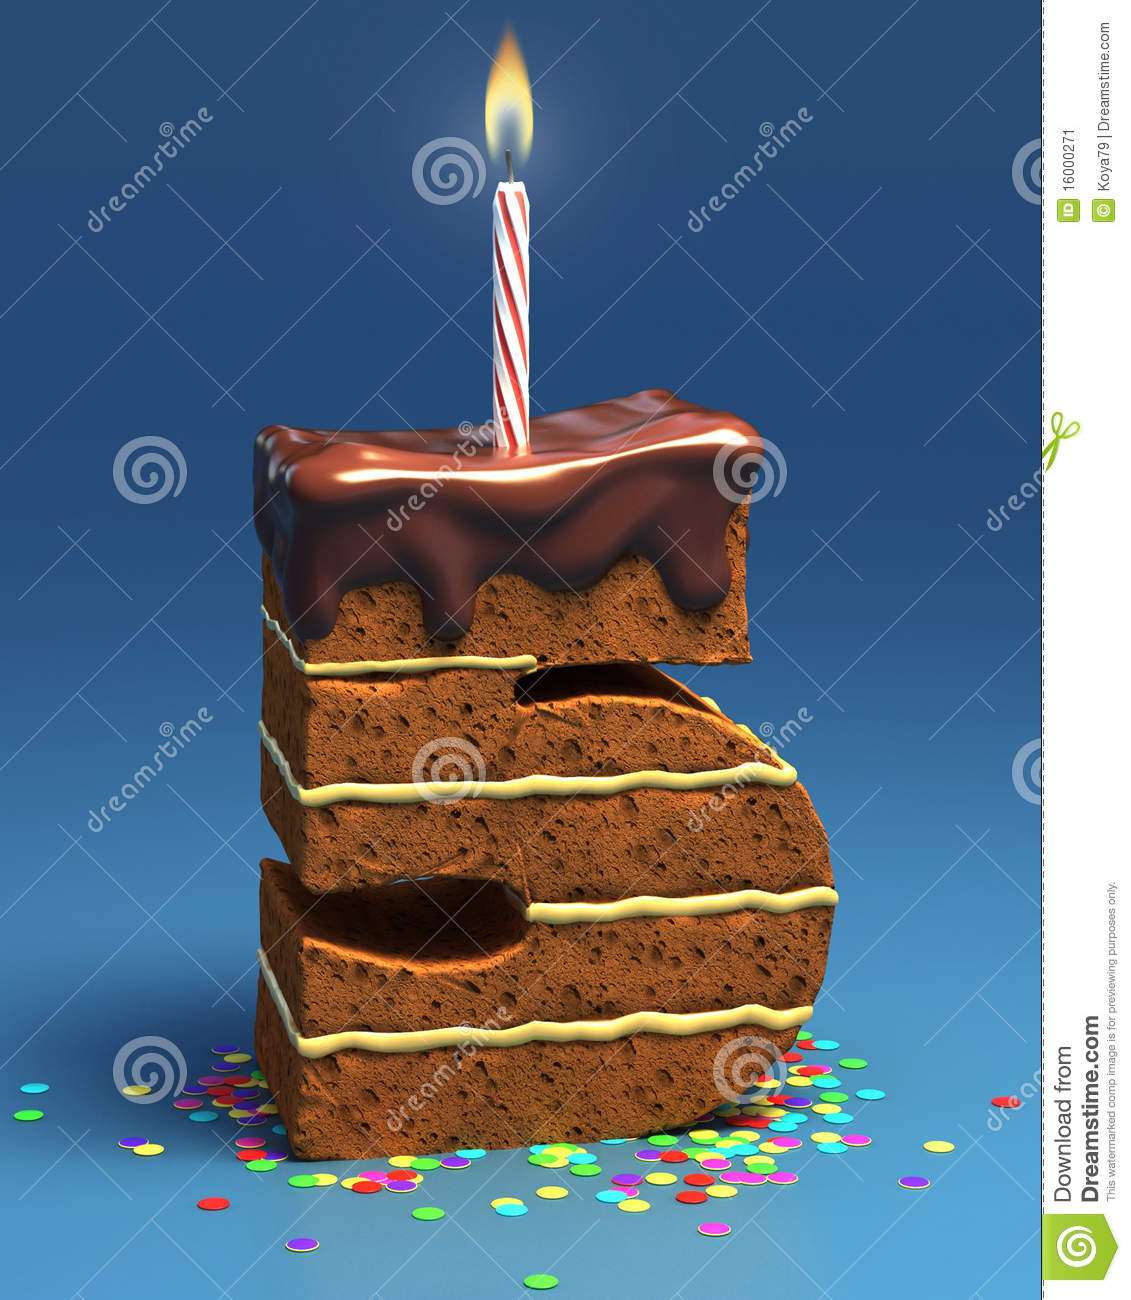 Number Five Shaped Birthday Cake Stock Image - Image: 16000271